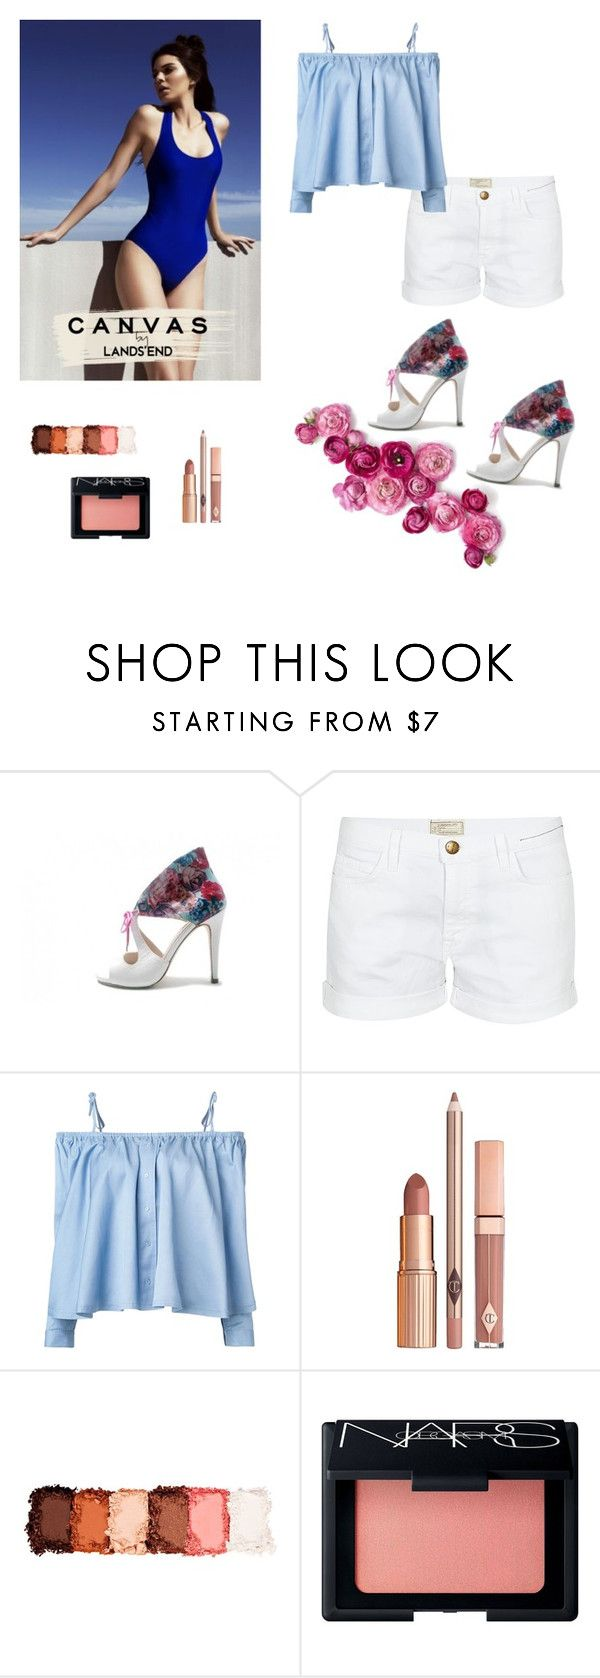 """Complementos ideales para este verano"" by missgarciashoes on Polyvore featuring moda, Current/Elliott, Sandy Liang, Lands' End, Dolce Vita, NYX y NARS Cosmetics"